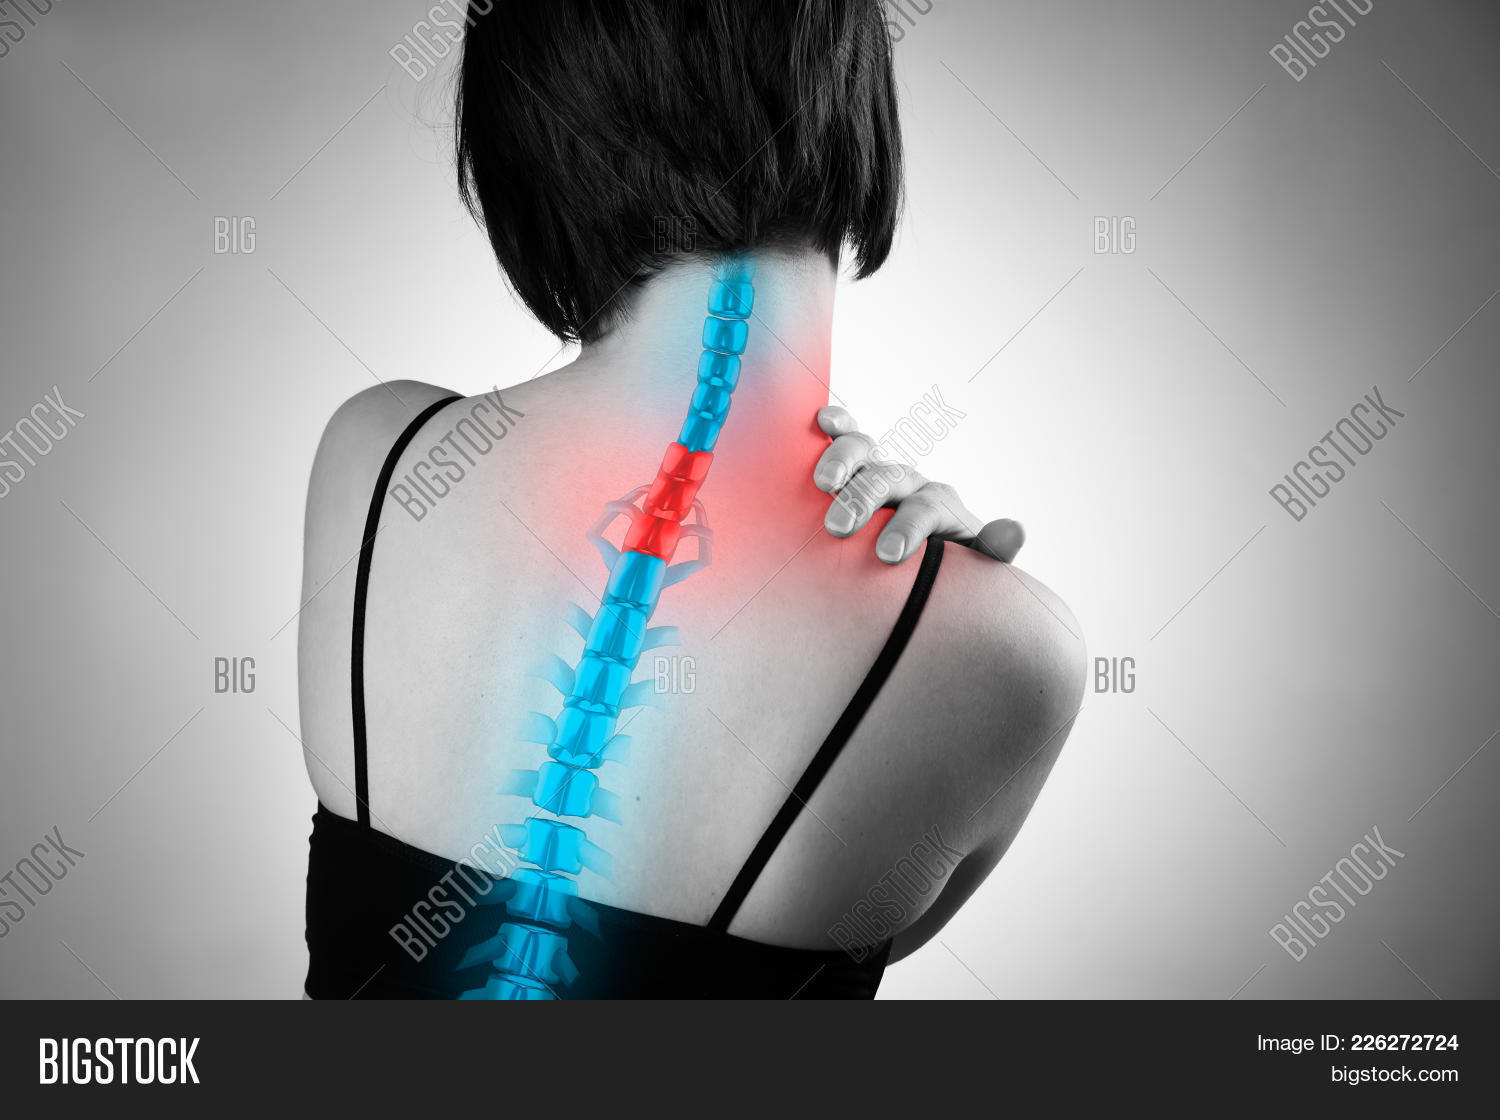 Pain Spine, Woman Image & Photo (Free Trial) | Bigstock